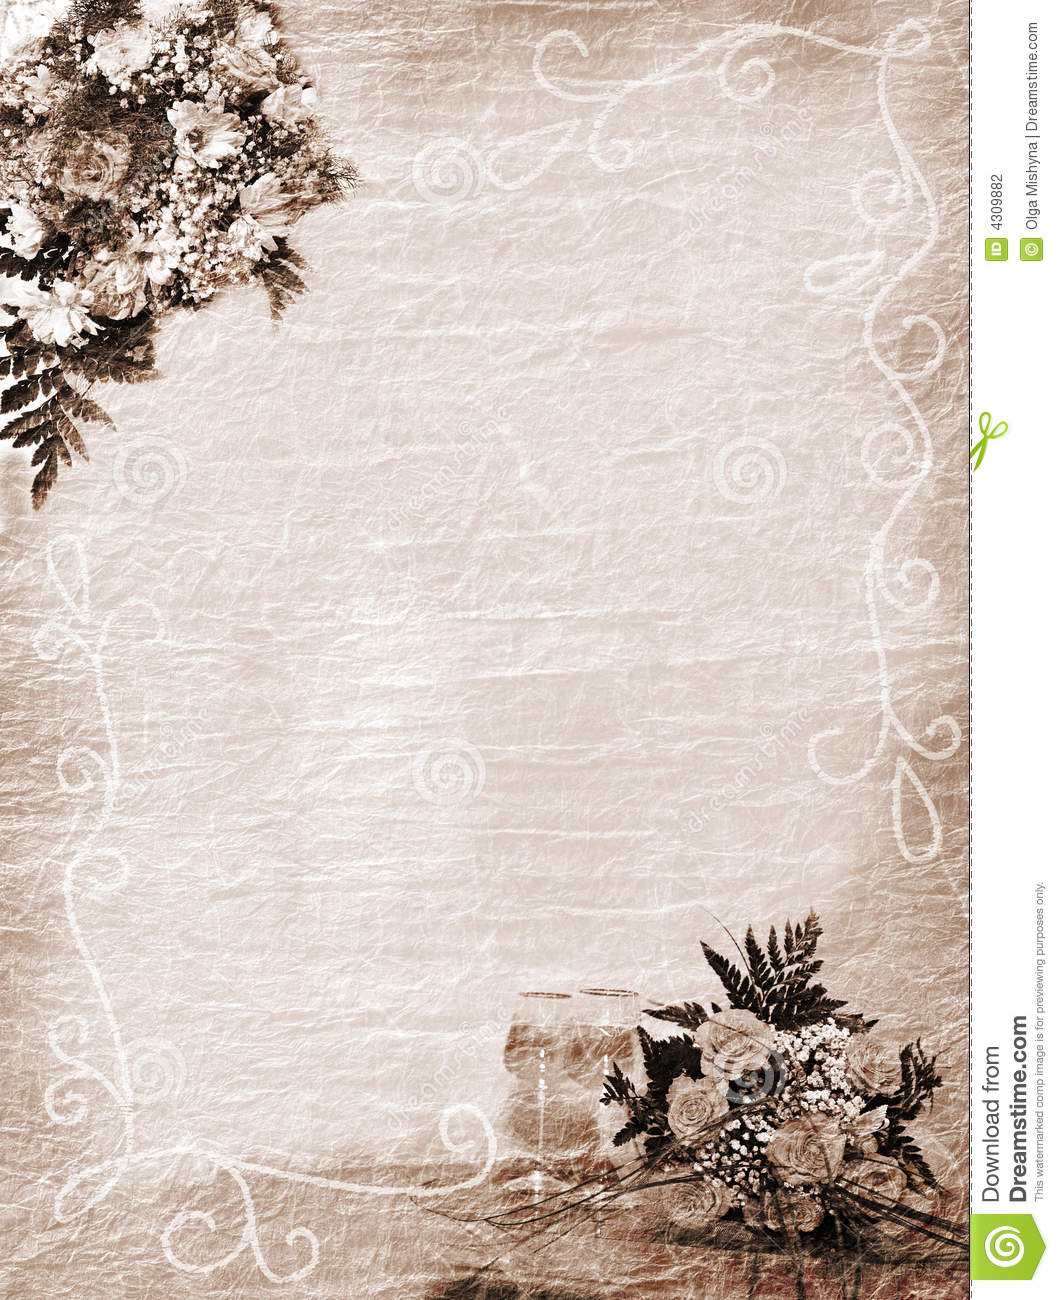 Wedding, Holiday Or Anniversary Background Stock Photography